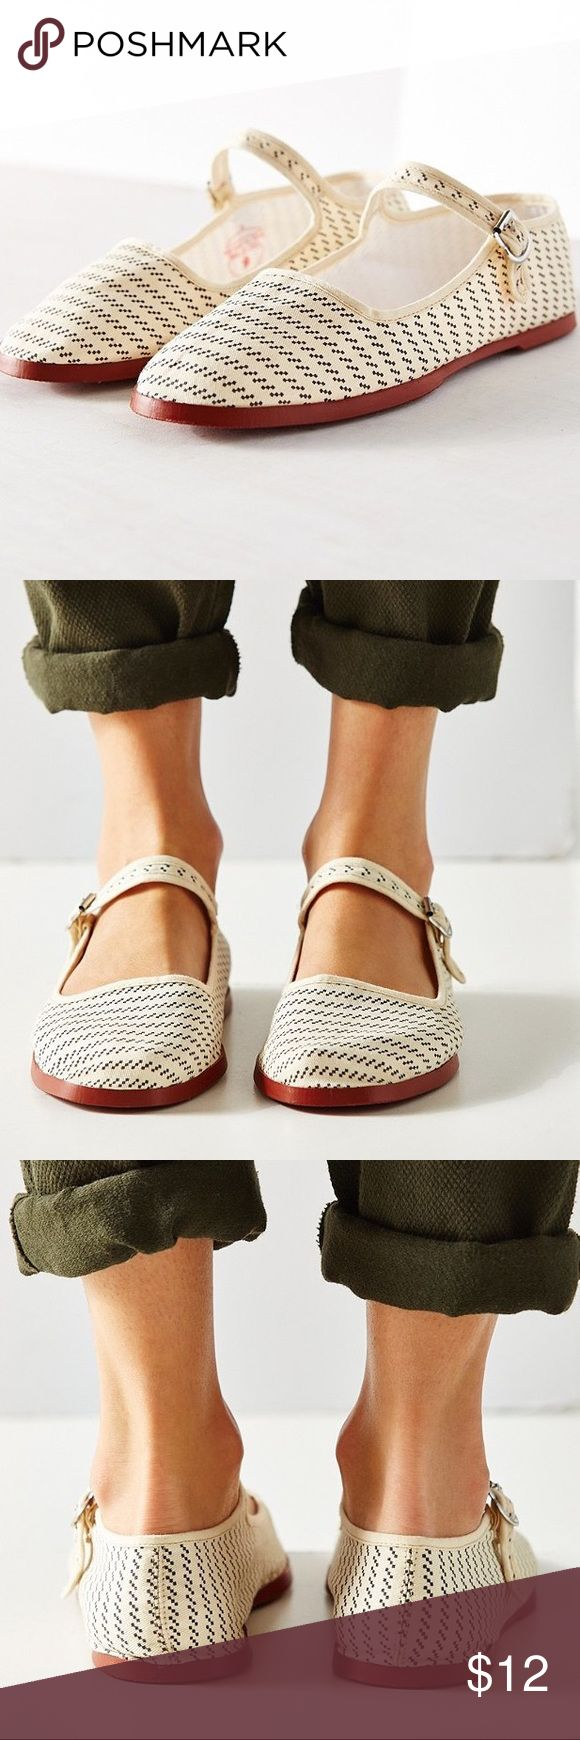 Urban Outfitters Cotton Mary Jane Flats (Size 8) NWT Urban Outfitter cotton Mary Jane flats. Never been used. Cozy, cute, and trendy *EVERY ORDER COMES WITH A FREE GIFT!* Urban Outfitters Shoes Flats & Loafers